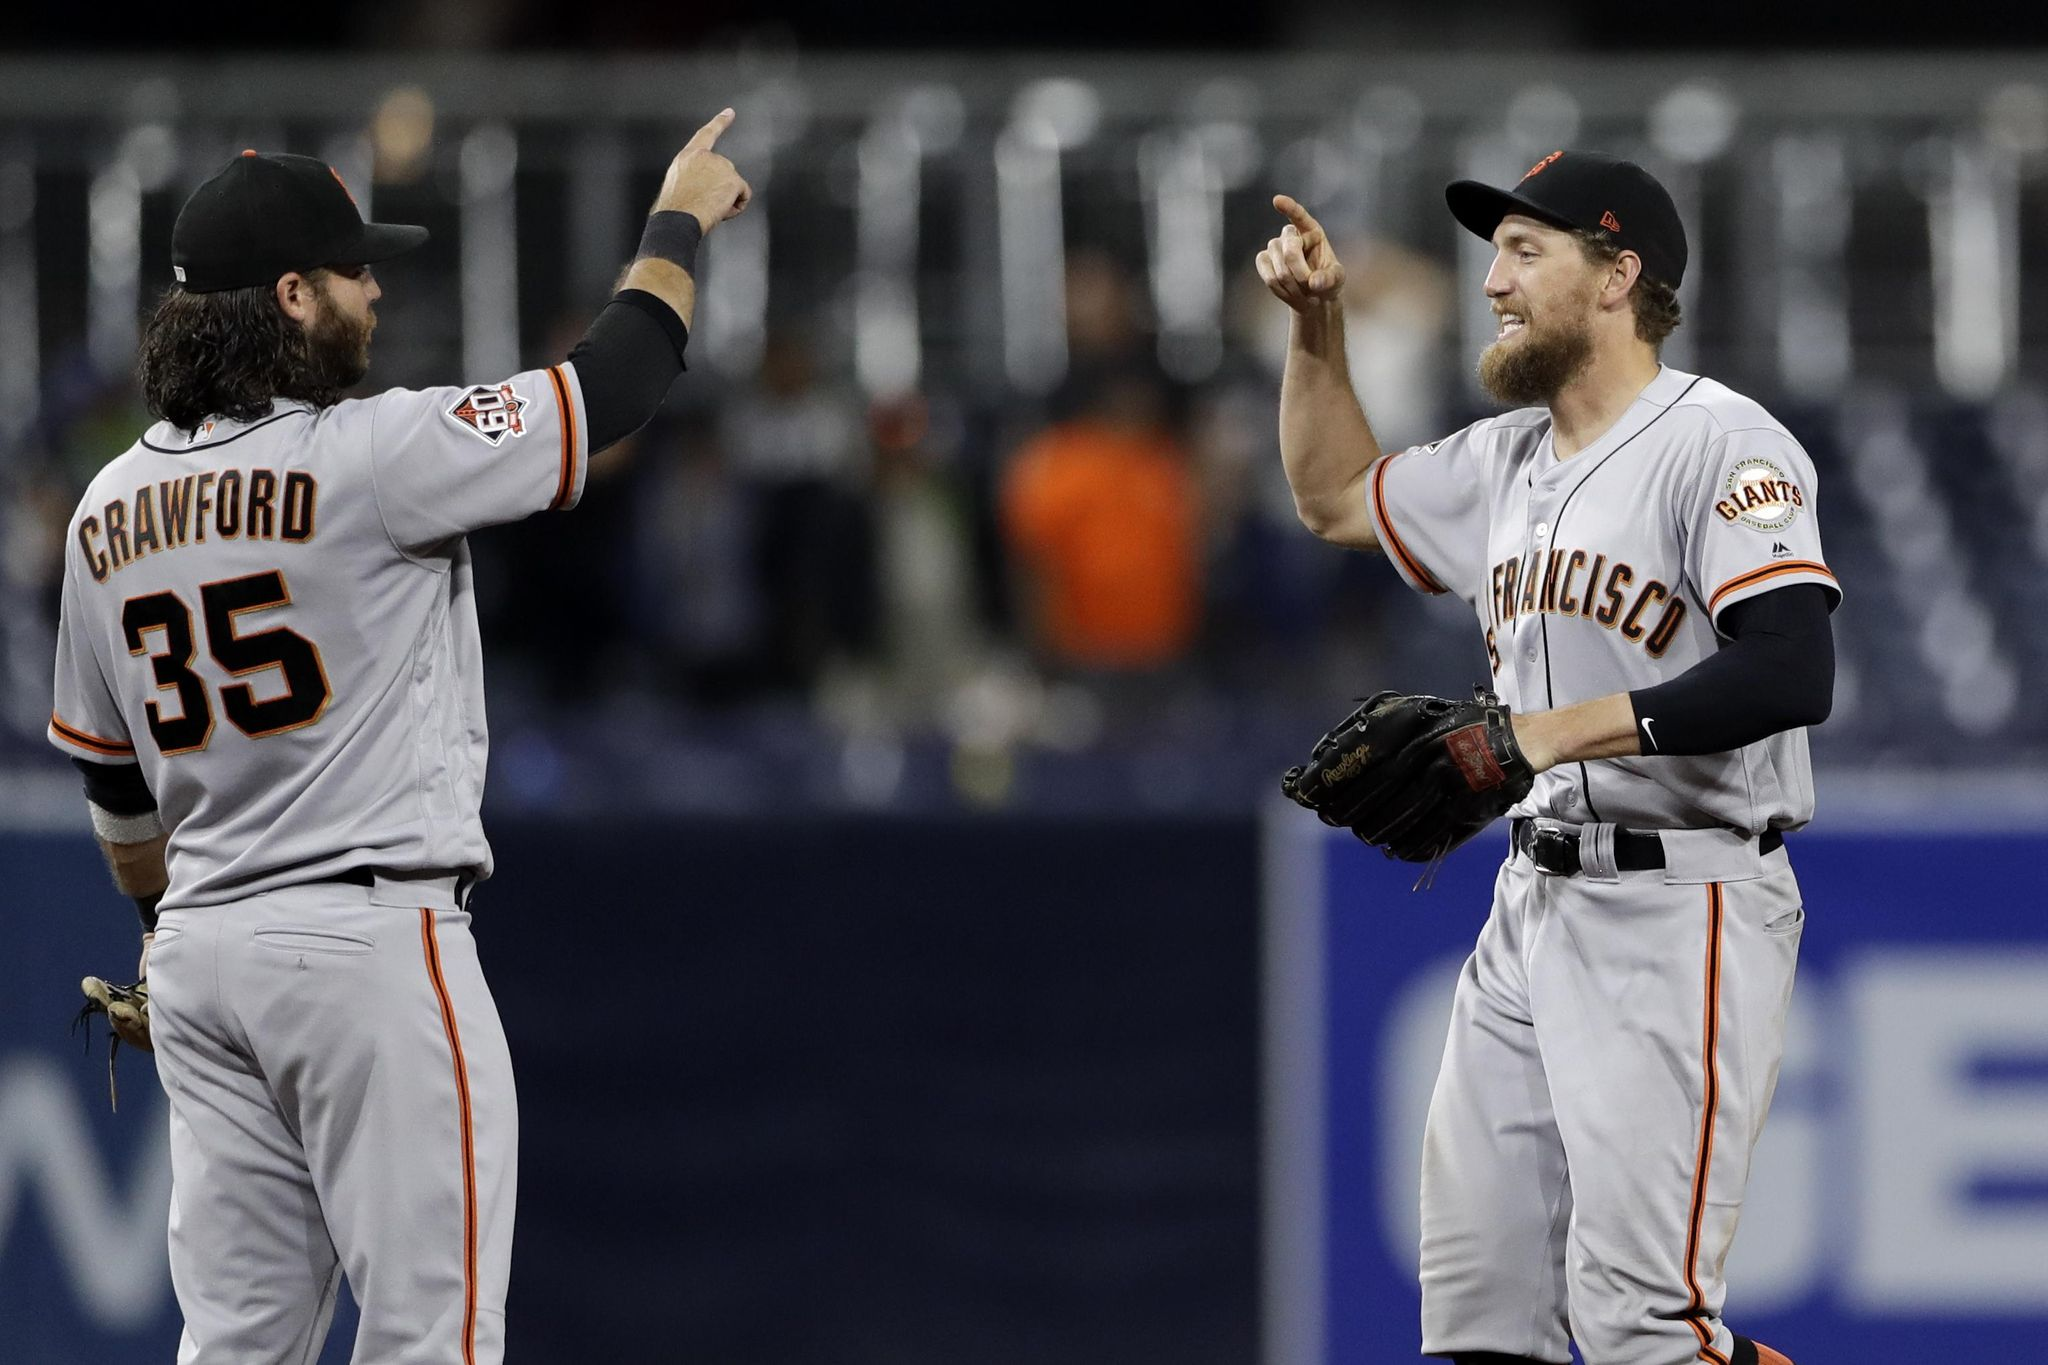 Giants_padres_baseball_78203_s2048x1365